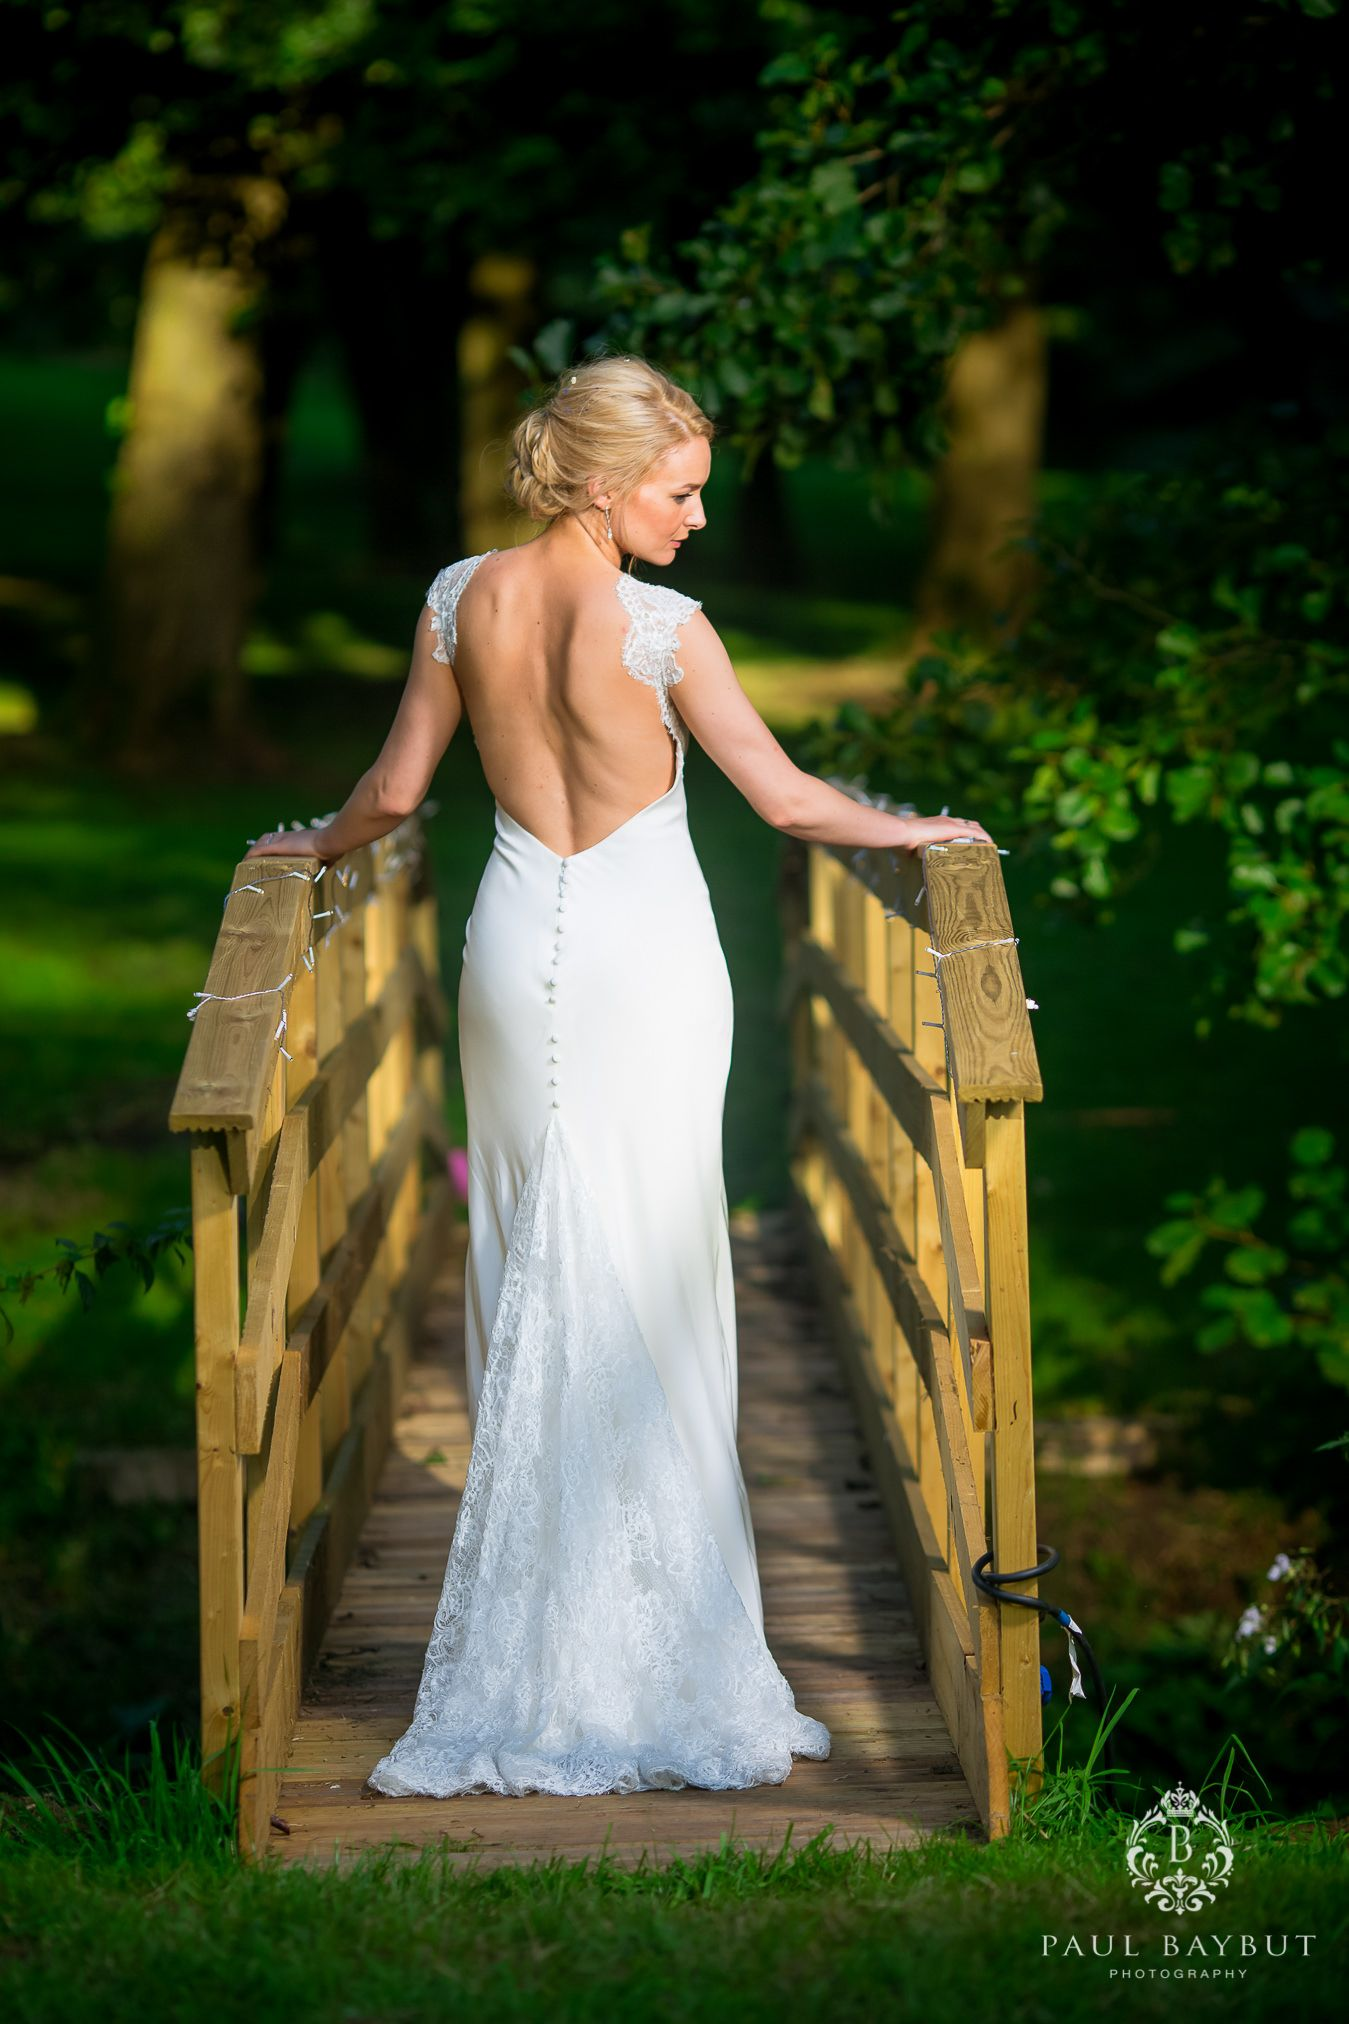 Bride wearing white wedding dress standing on a wooden bridge in a Cheshire garden